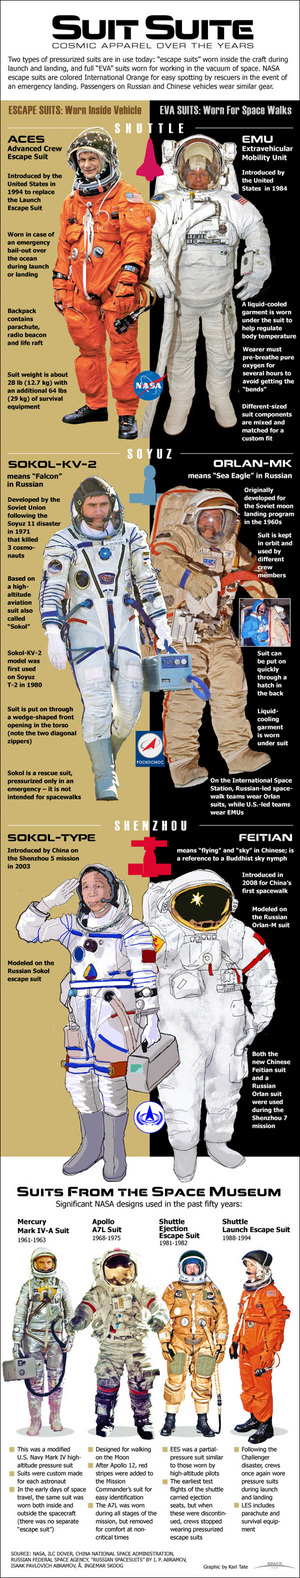 "NASA's spacesuits have come a long way since the dawn of human spaceflight. <a href=""http://www.space.com/71-suit-suite-cosmic-apparel-over-the-years.html"">See how U.S. spacesuit tech has evolved in this Space.com infographic</a>."